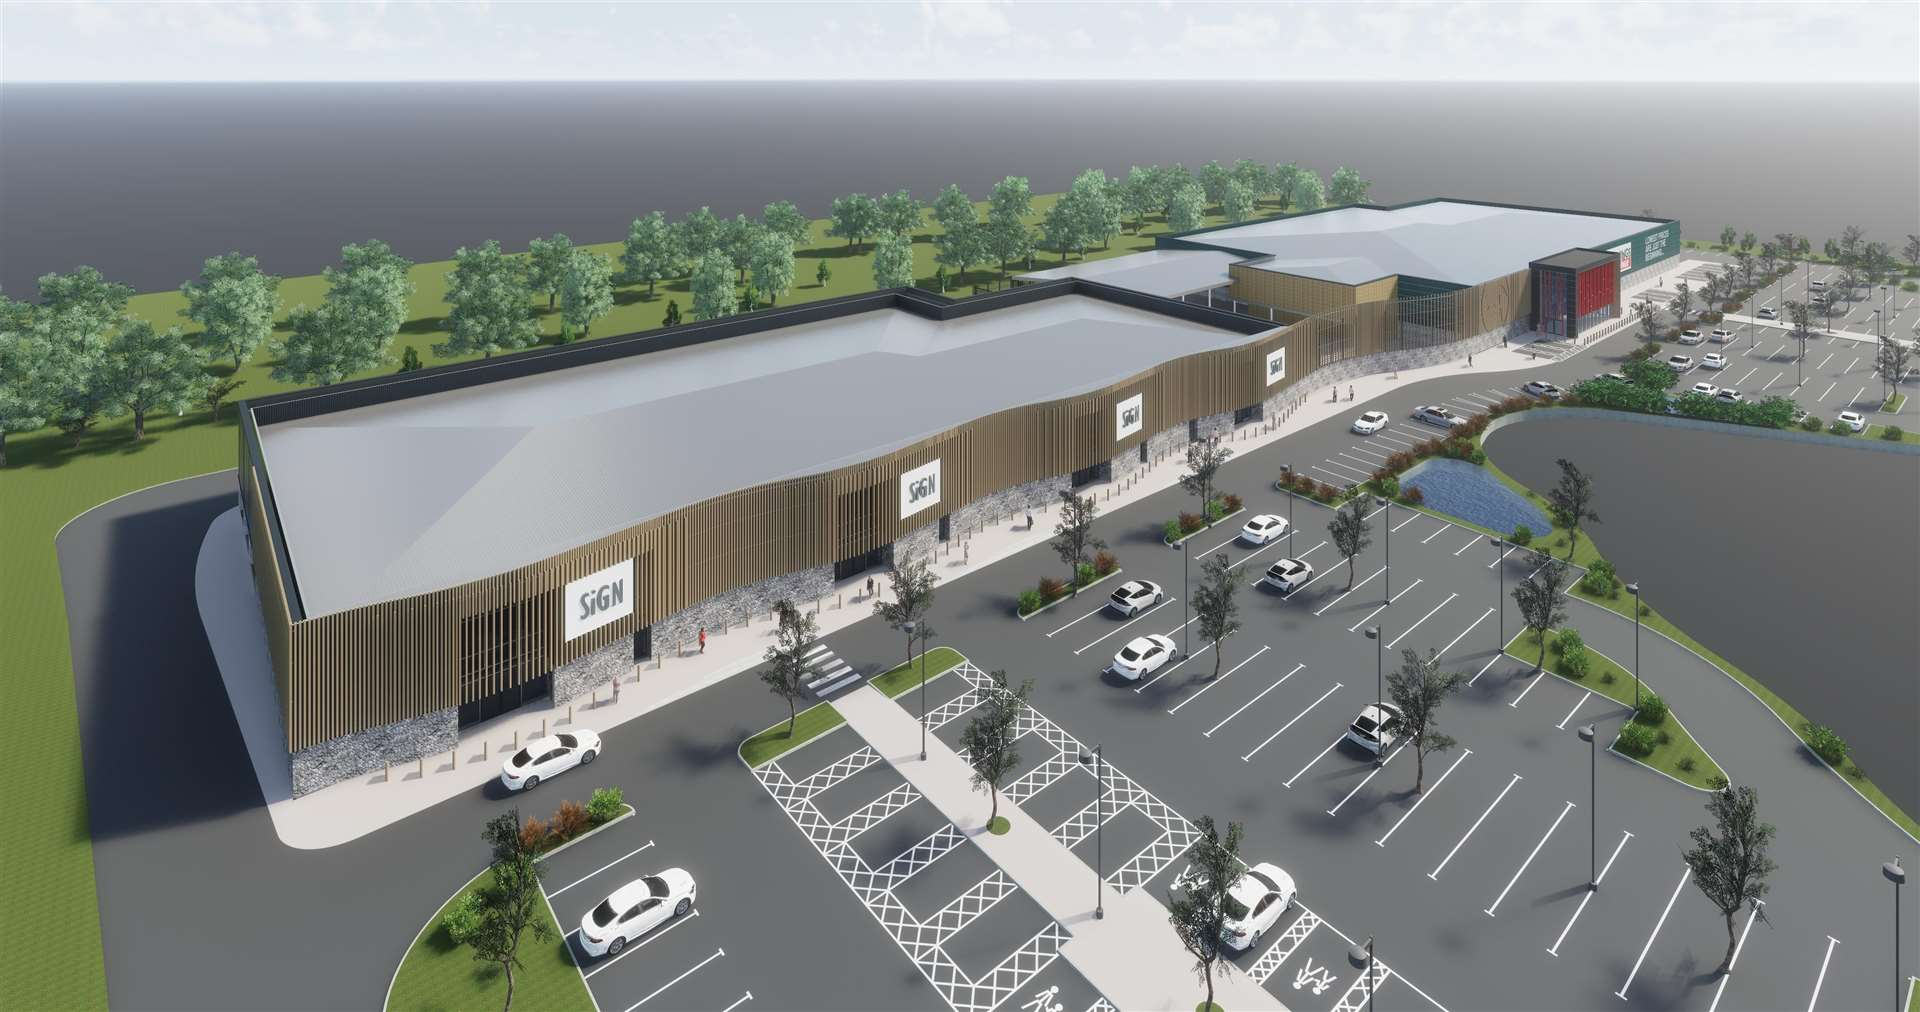 Five stores are proposed including Bunnings